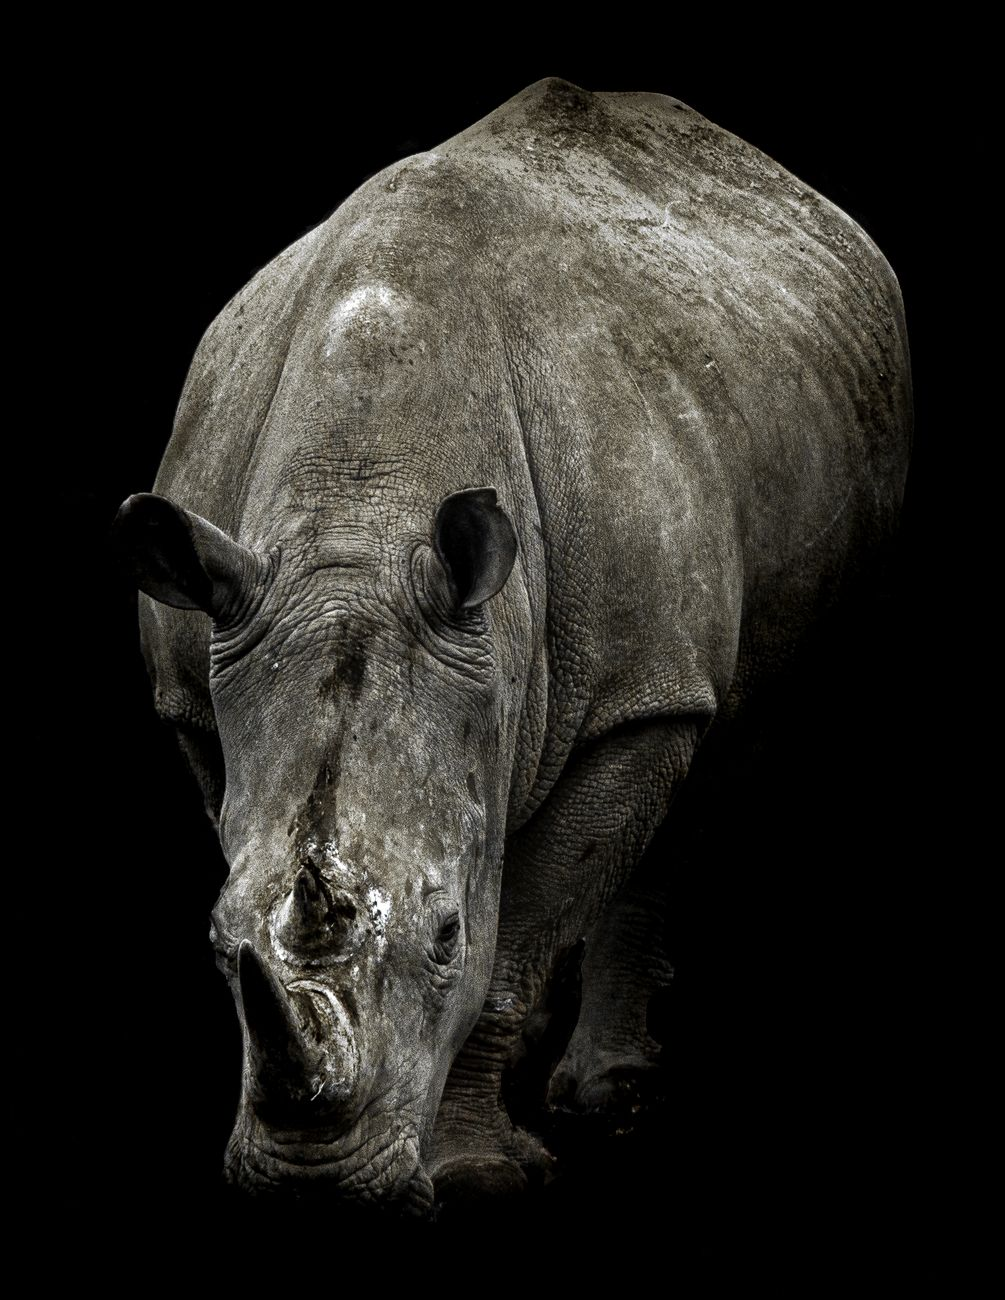 Rhinoceros head on